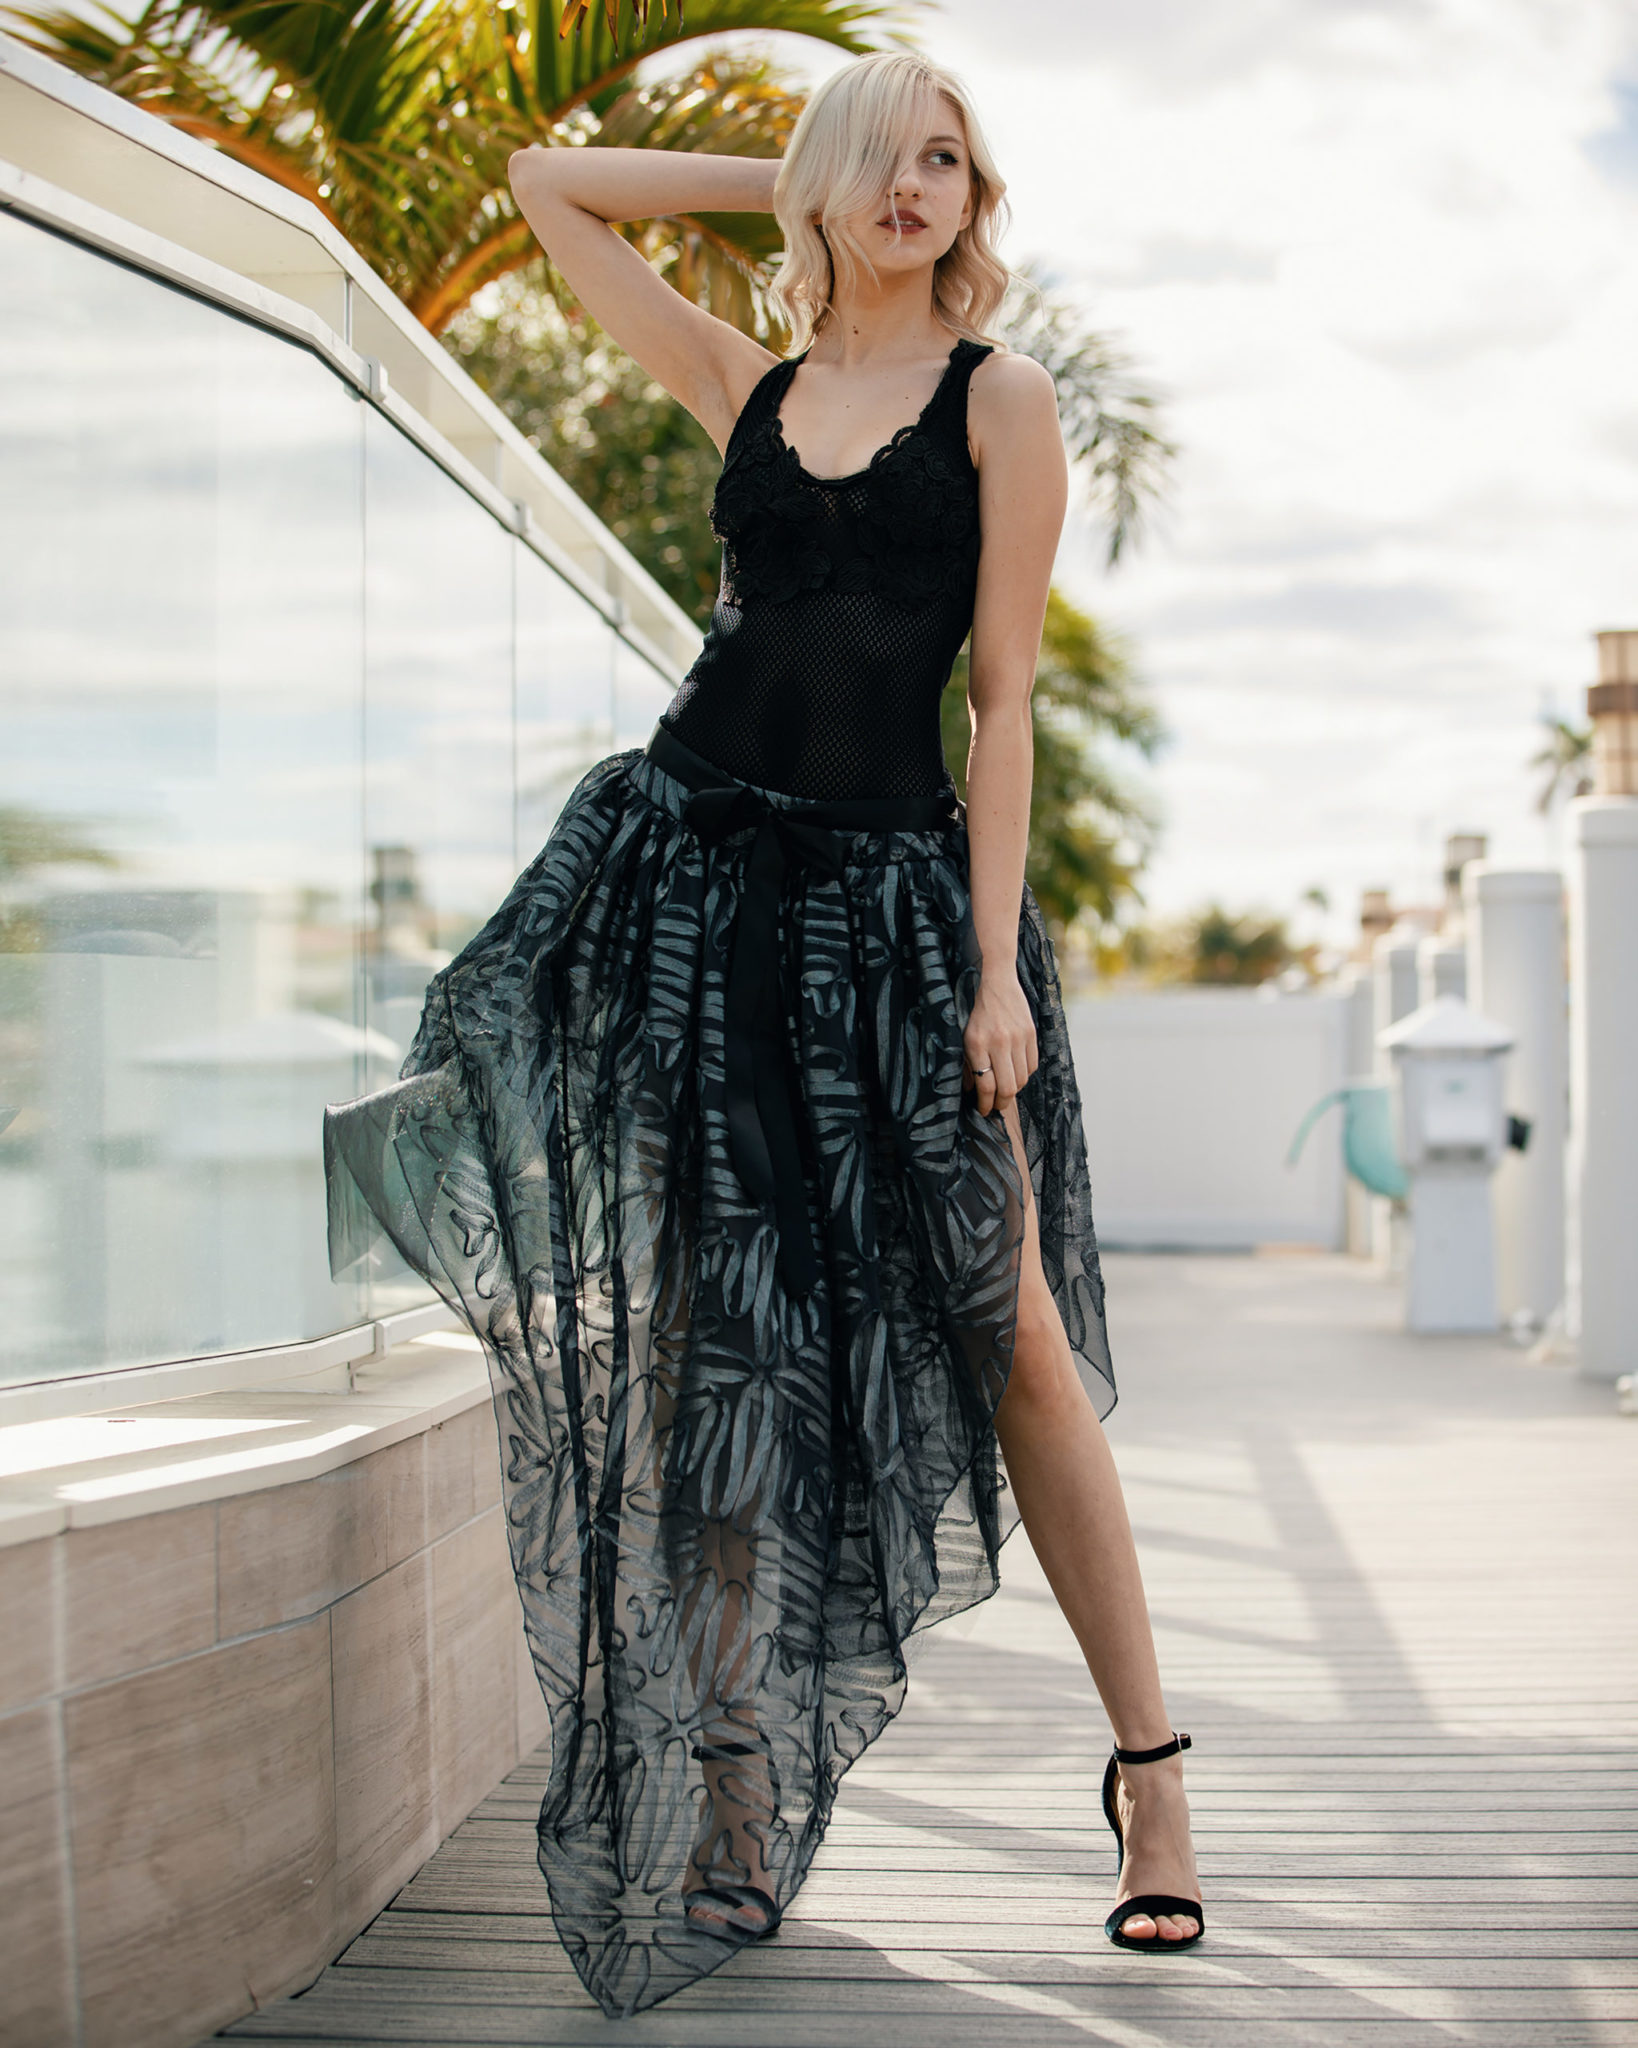 Sheer beauty: A double-layer handkerchief skirt, designed in a lush 3D pattern of silver tones and illusion threads, pairs seamlessly with a black body suit that's enhanced by beaded Chantilly fabric flower details. (Model: Ashley Van Helden)